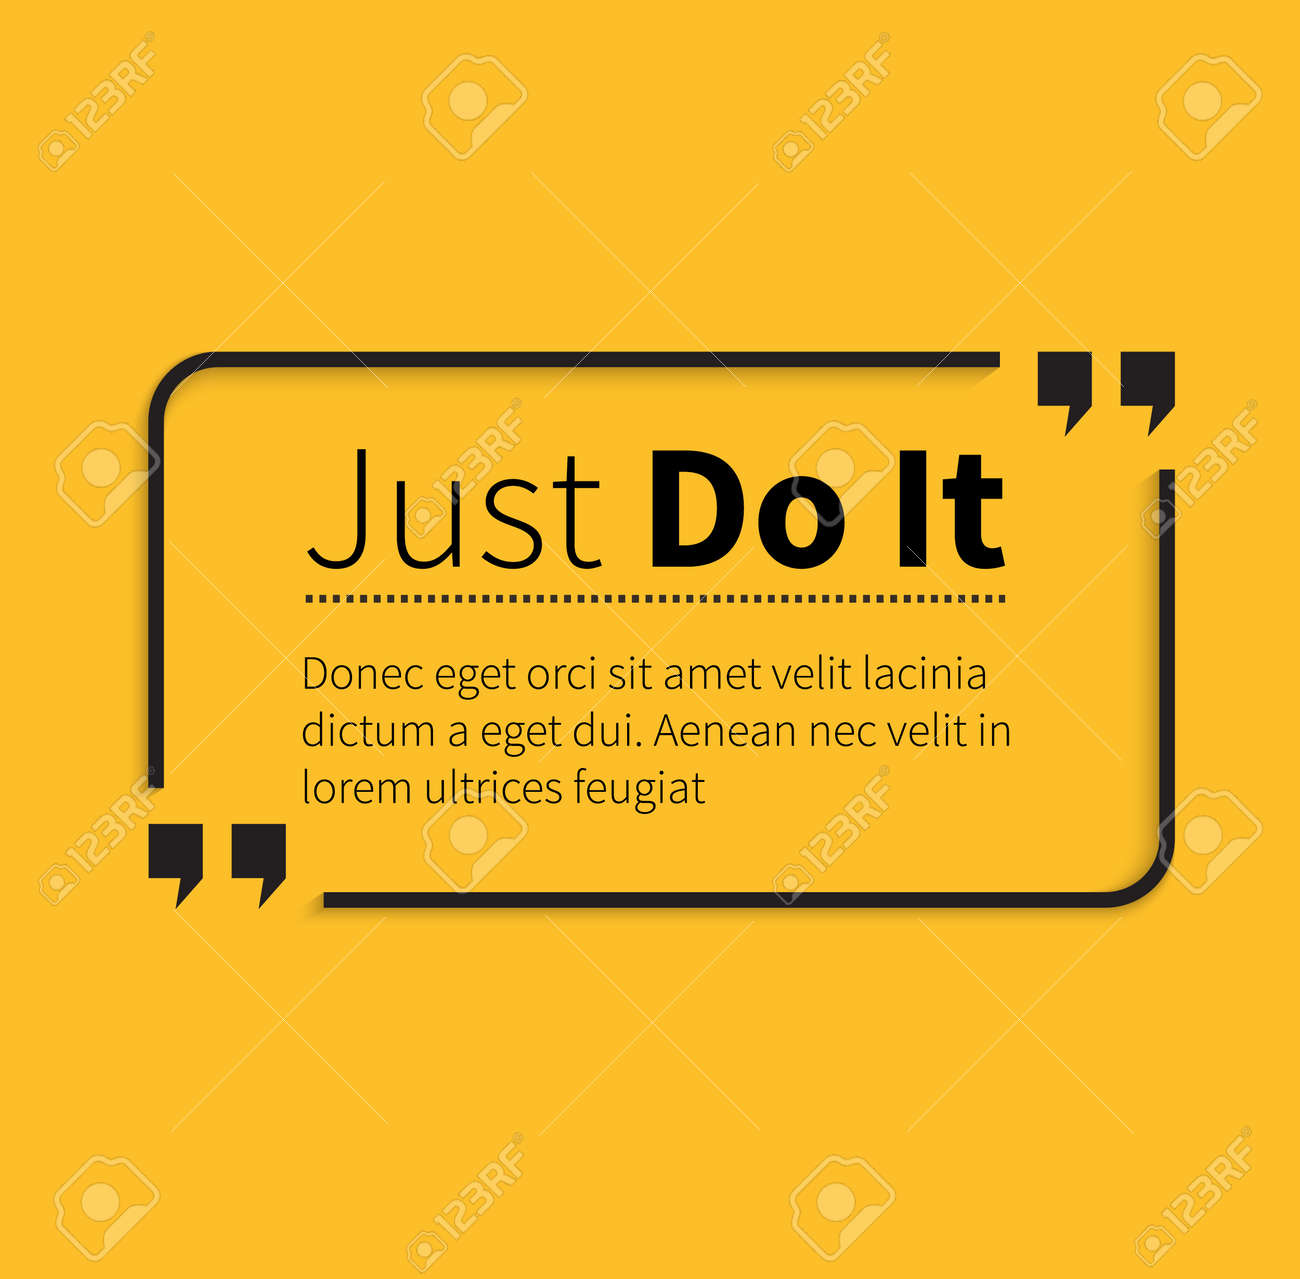 Quote bubble quote marks quotation marks quote box get a quote bubble quote marks quotation marks quote box get a quote biocorpaavc Image collections